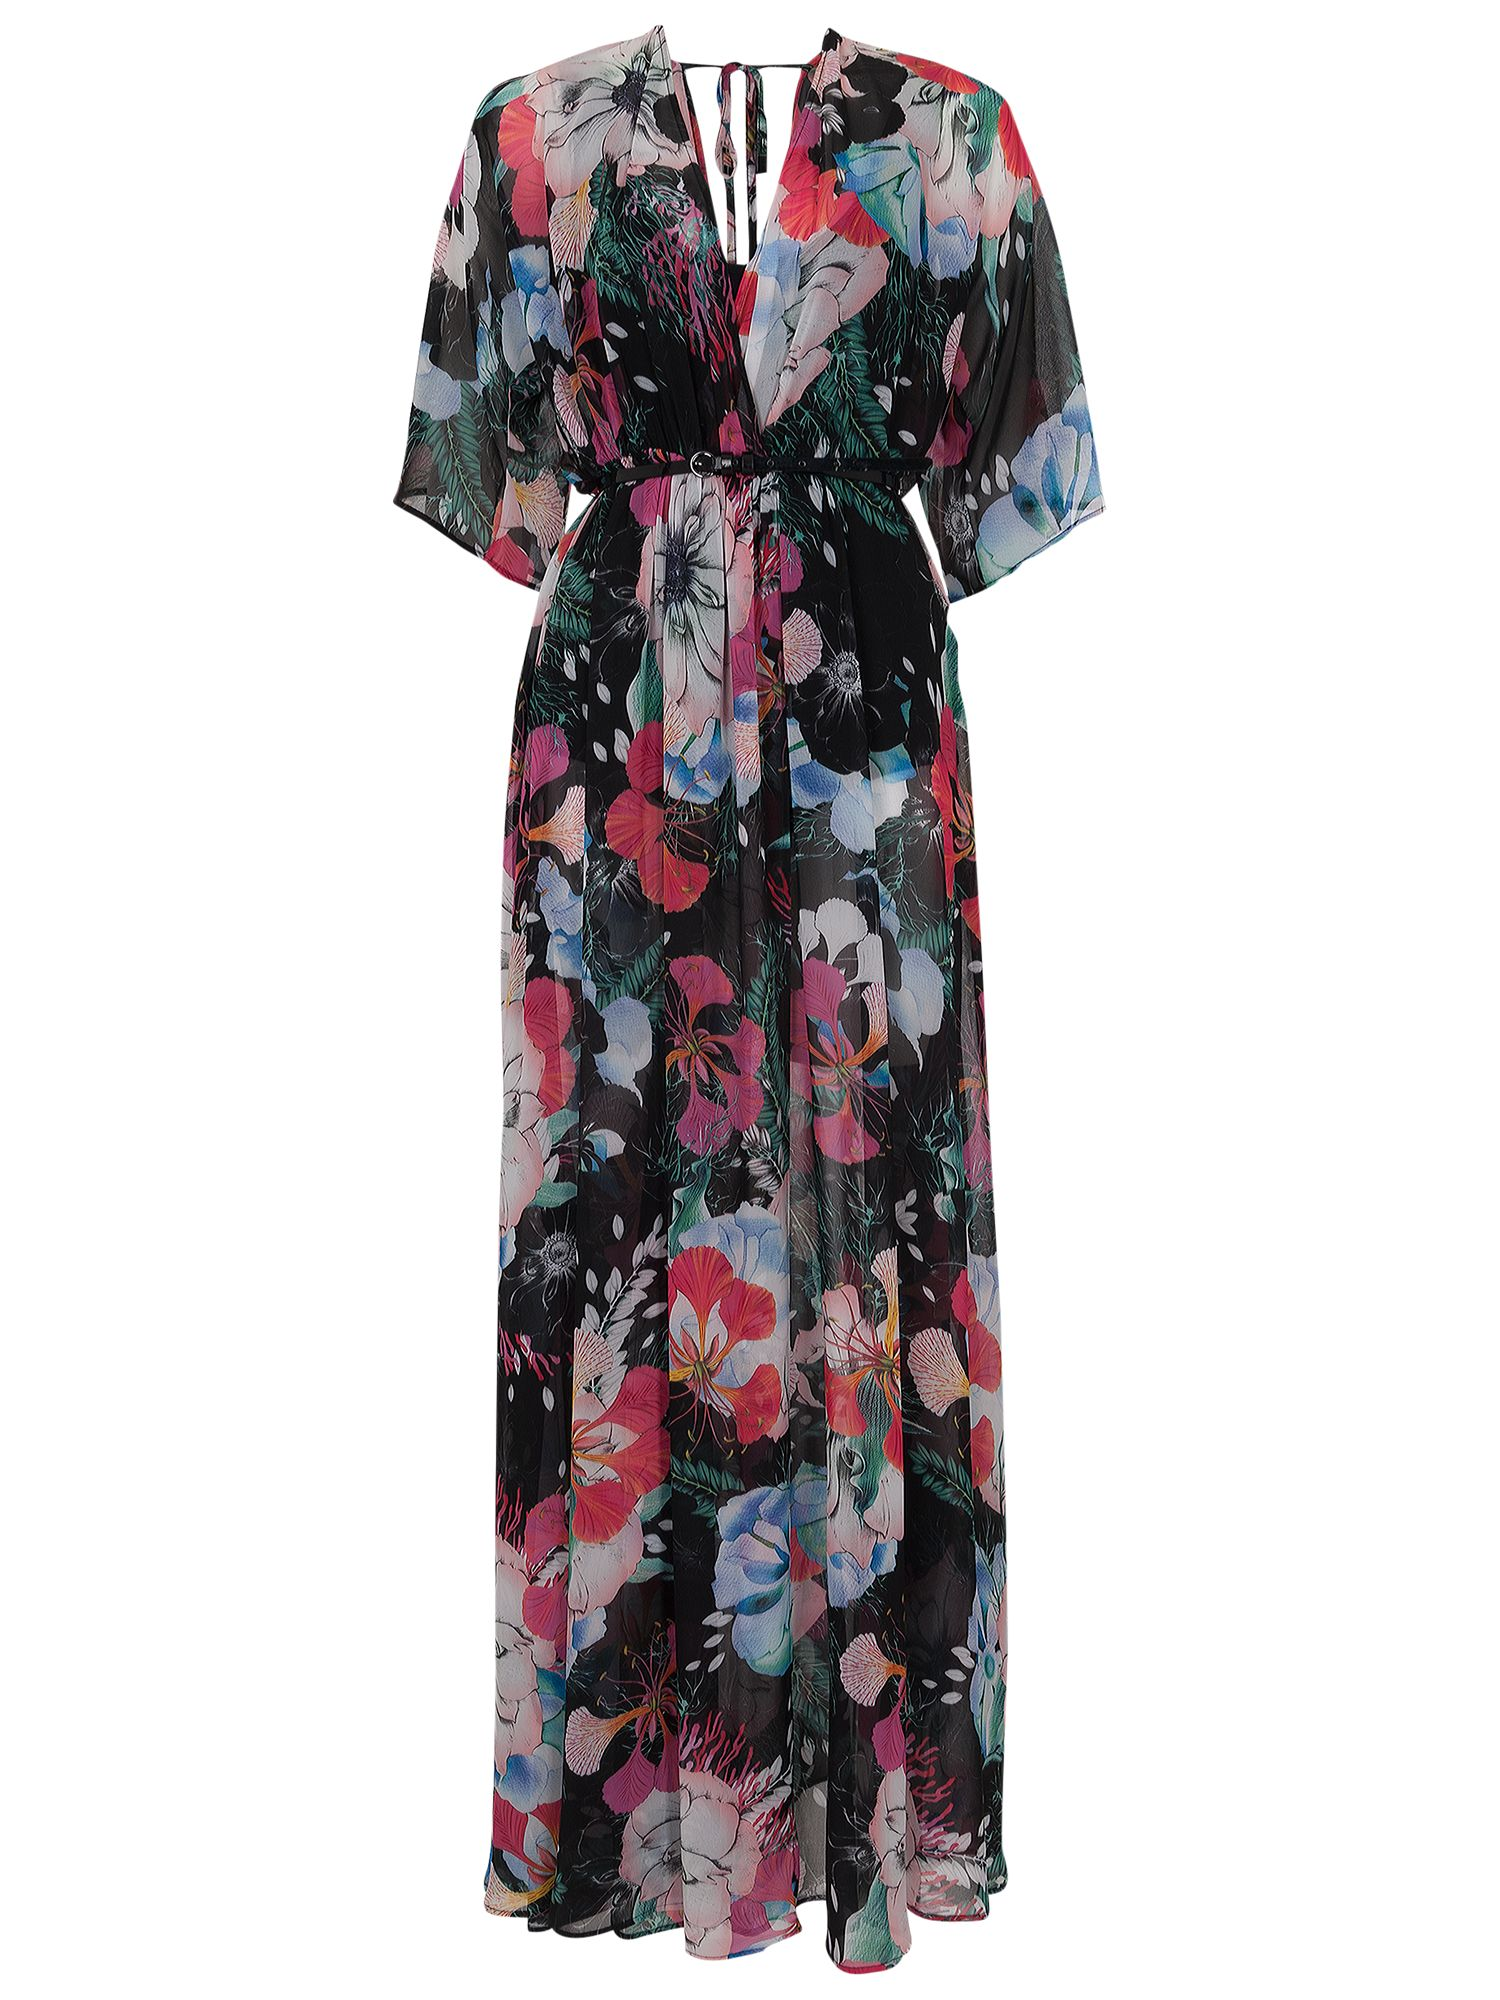 french connection floral reef chiffon v-neck maxi dress black multi, french, connection, floral, reef, chiffon, v-neck, maxi, dress, black, multi, french connection, 16|8|10|12|14|6, women, womens dresses, 1933166